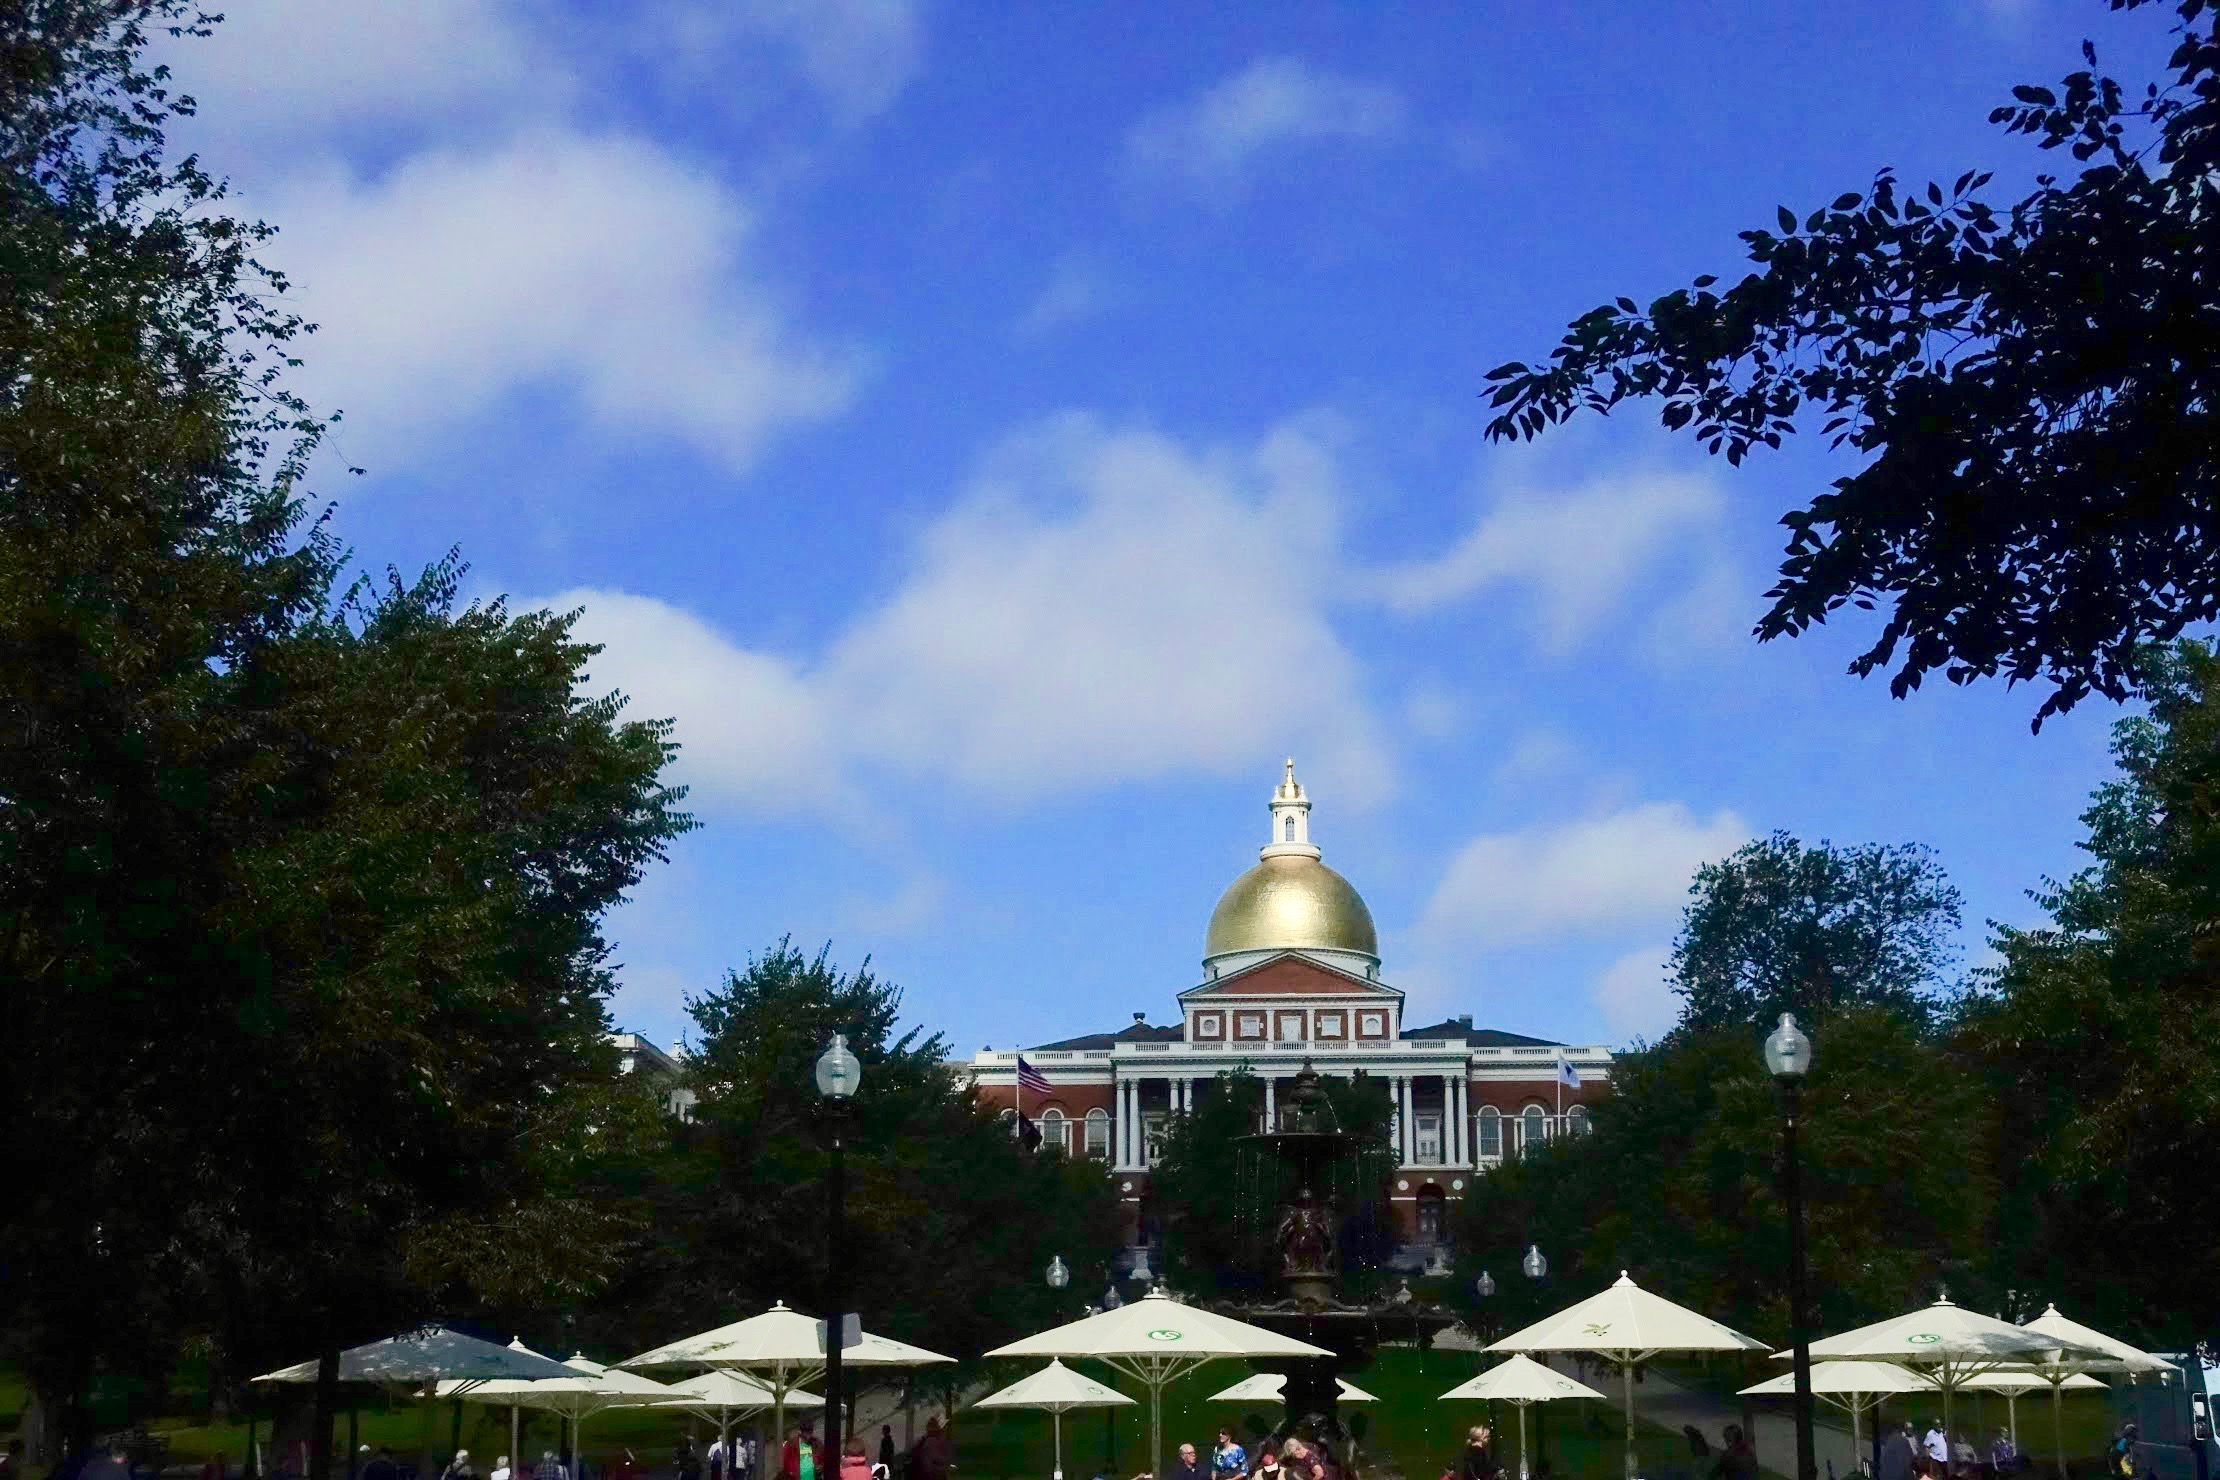 Massachusetts State House in Boston